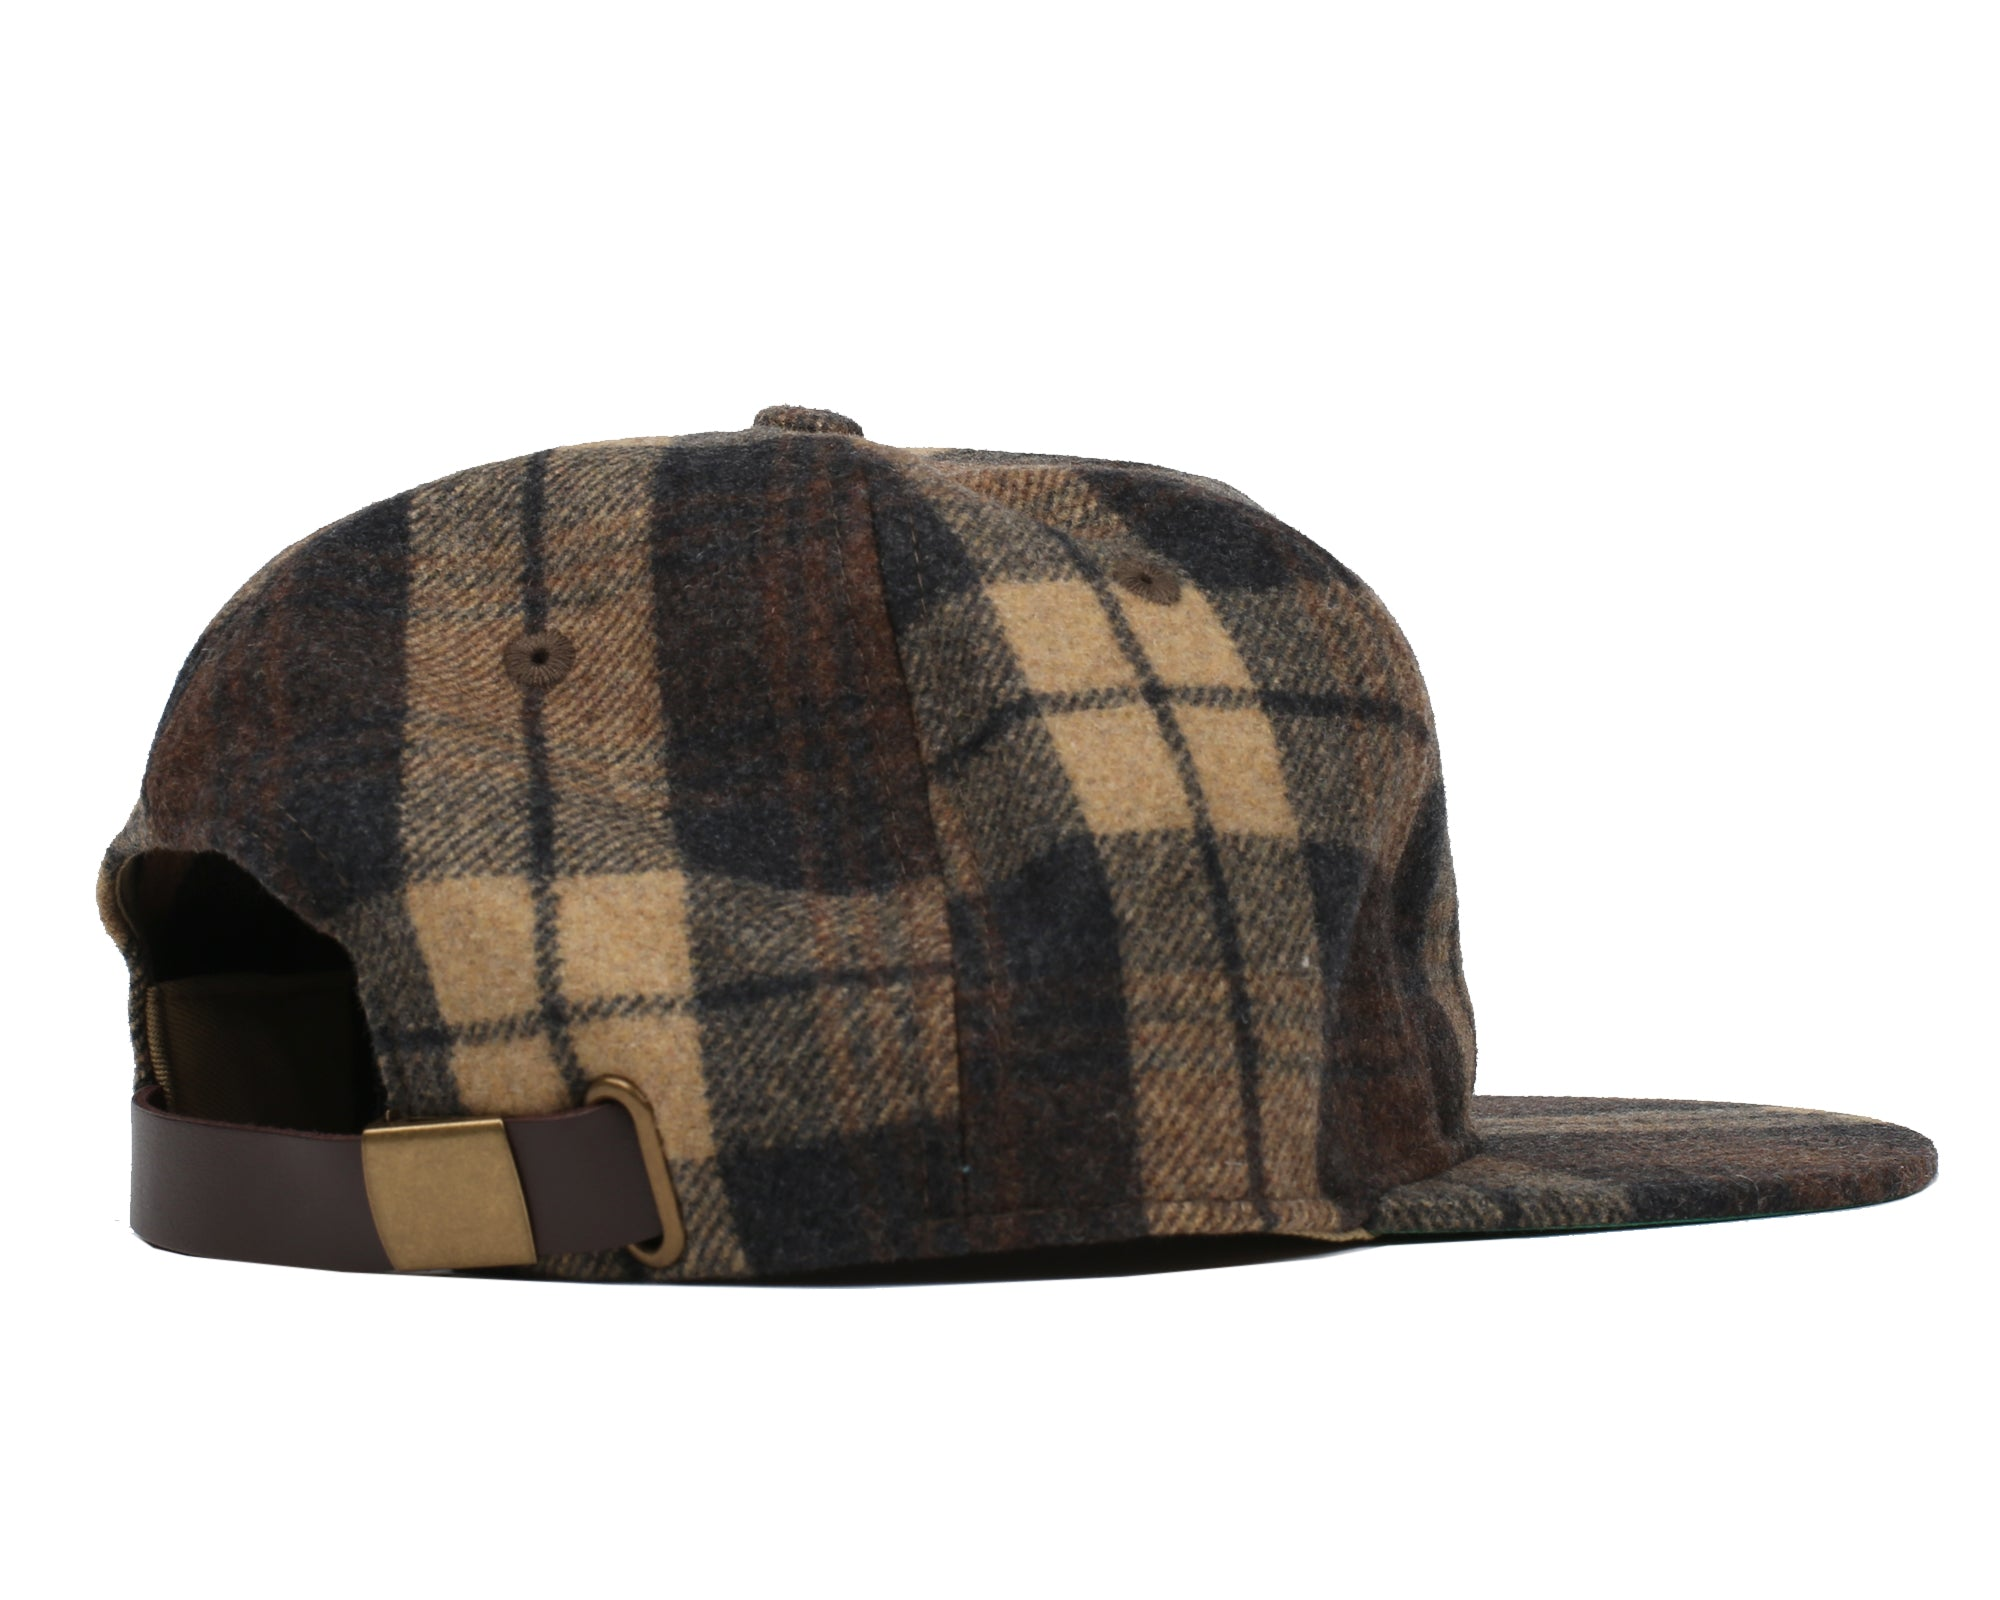 CHECK STANDING ASTRO 6 PANEL CAP - BROWN